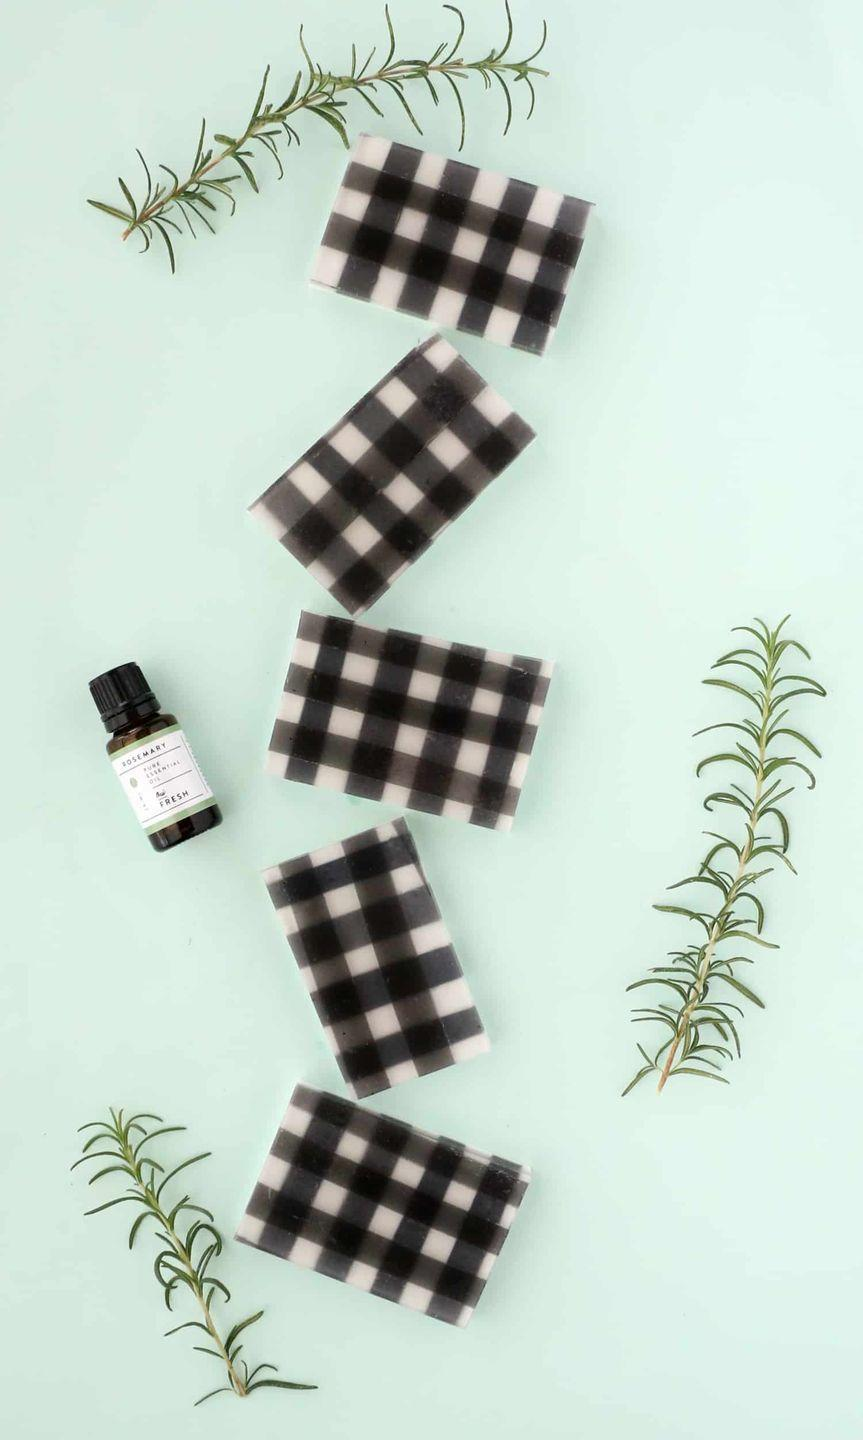 """<p>A Father's Day gift idea that gives twice—it'll occupy your teenage daughter for an afternoon, plus delight dad. </p><p><a href=""""https://abeautifulmess.com/2017/12/diy-buffalo-check-rosemary-soap.html"""" rel=""""nofollow noopener"""" target=""""_blank"""" data-ylk=""""slk:Get the tutorial."""" class=""""link rapid-noclick-resp"""">Get the tutorial.</a></p><p><a class=""""link rapid-noclick-resp"""" href=""""https://www.amazon.com/Rosemary-Essential-Oil-100-Pure/dp/B00PM2T3N6?tag=syn-yahoo-20&ascsubtag=%5Bartid%7C10072.g.27603456%5Bsrc%7Cyahoo-us"""" rel=""""nofollow noopener"""" target=""""_blank"""" data-ylk=""""slk:SHOP ESSENTIAL OIL"""">SHOP ESSENTIAL OIL</a></p>"""